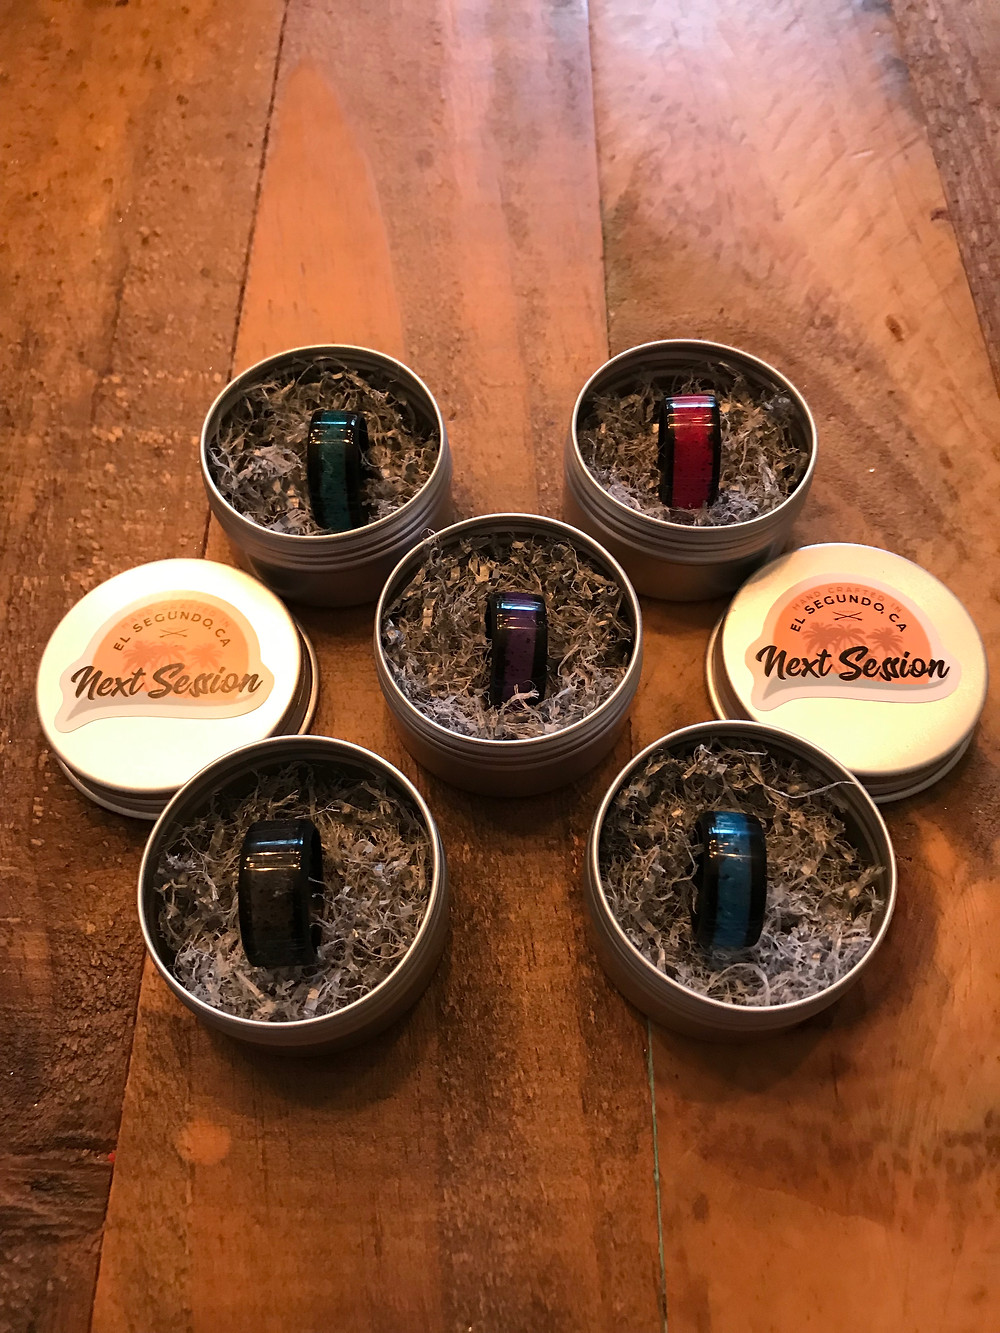 Next Session rings in various colors displayed in their tins